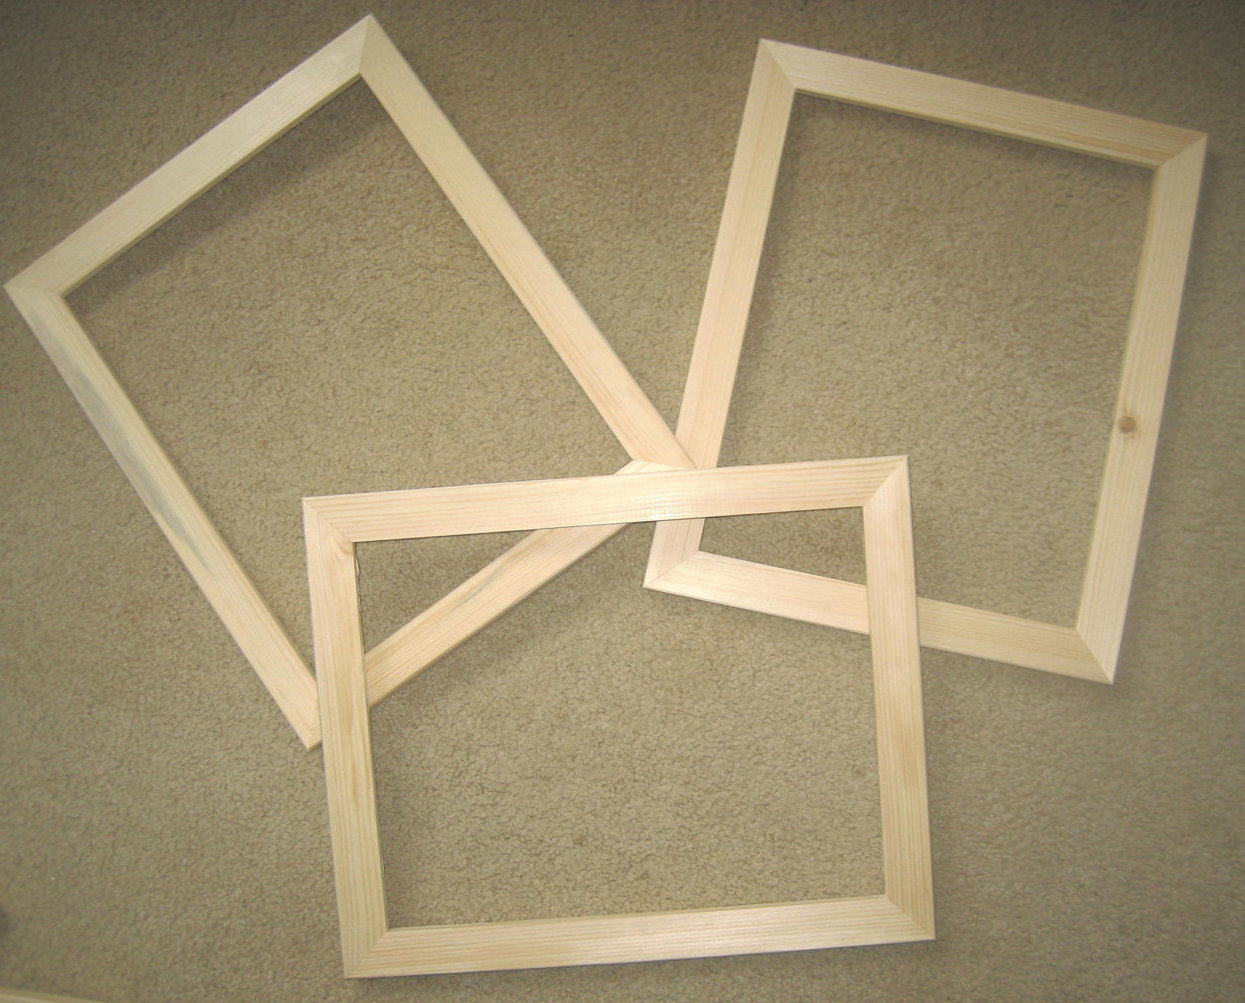 wooden picture frames cheap images craft decoration ideas wood picture frames cheap gallery craft decoration ideas - Wooden Picture Frames Cheap